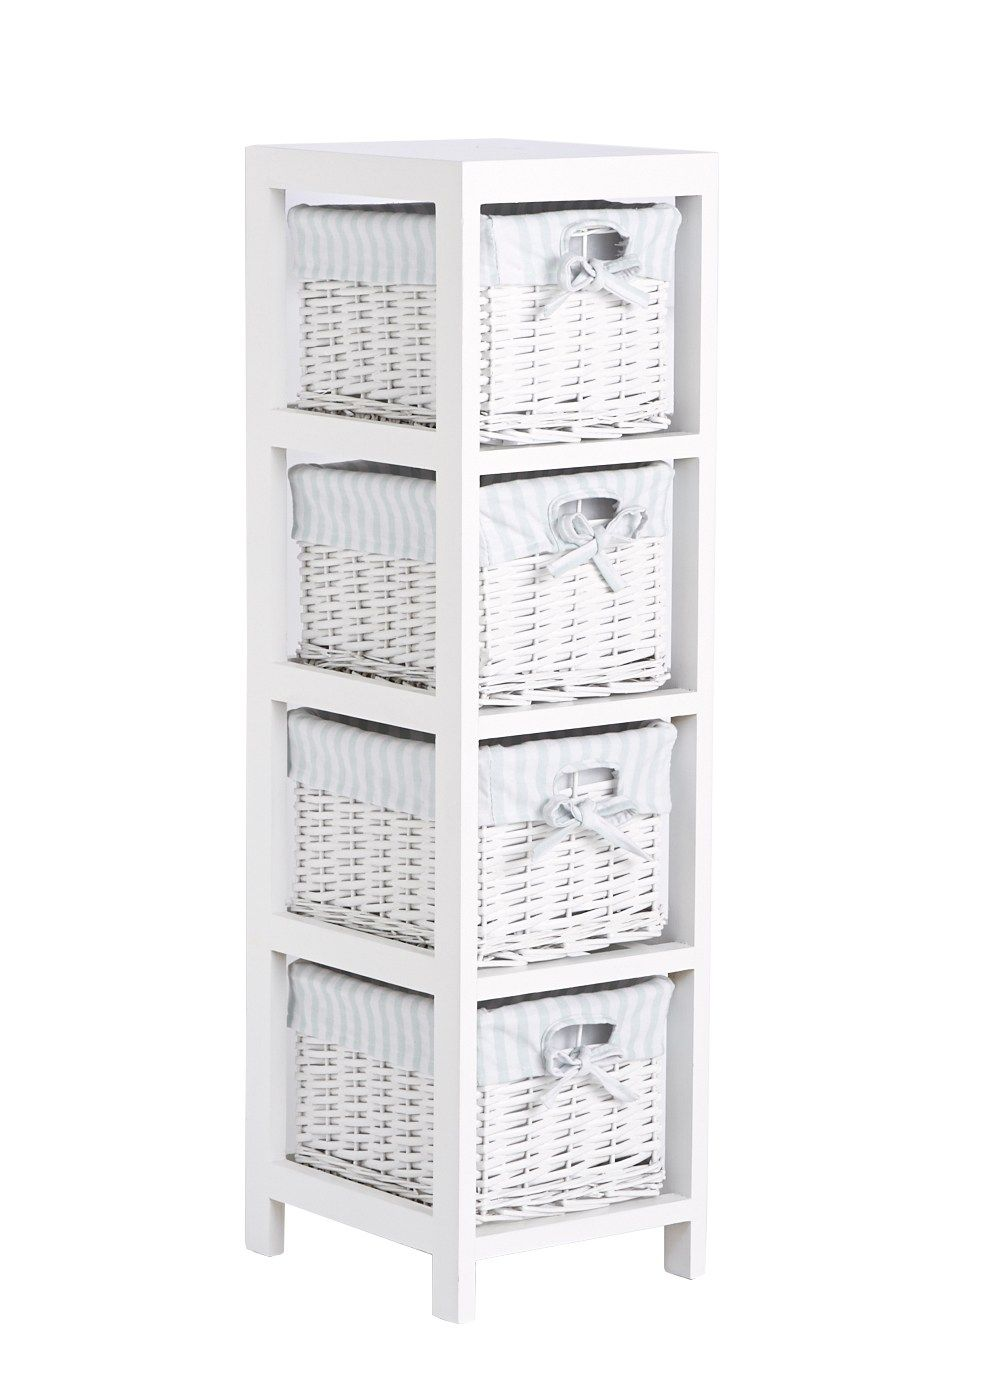 Image Gallery For Website Set of Split Willow Drawers cm x cm x cm Matalan Bathroom Storage